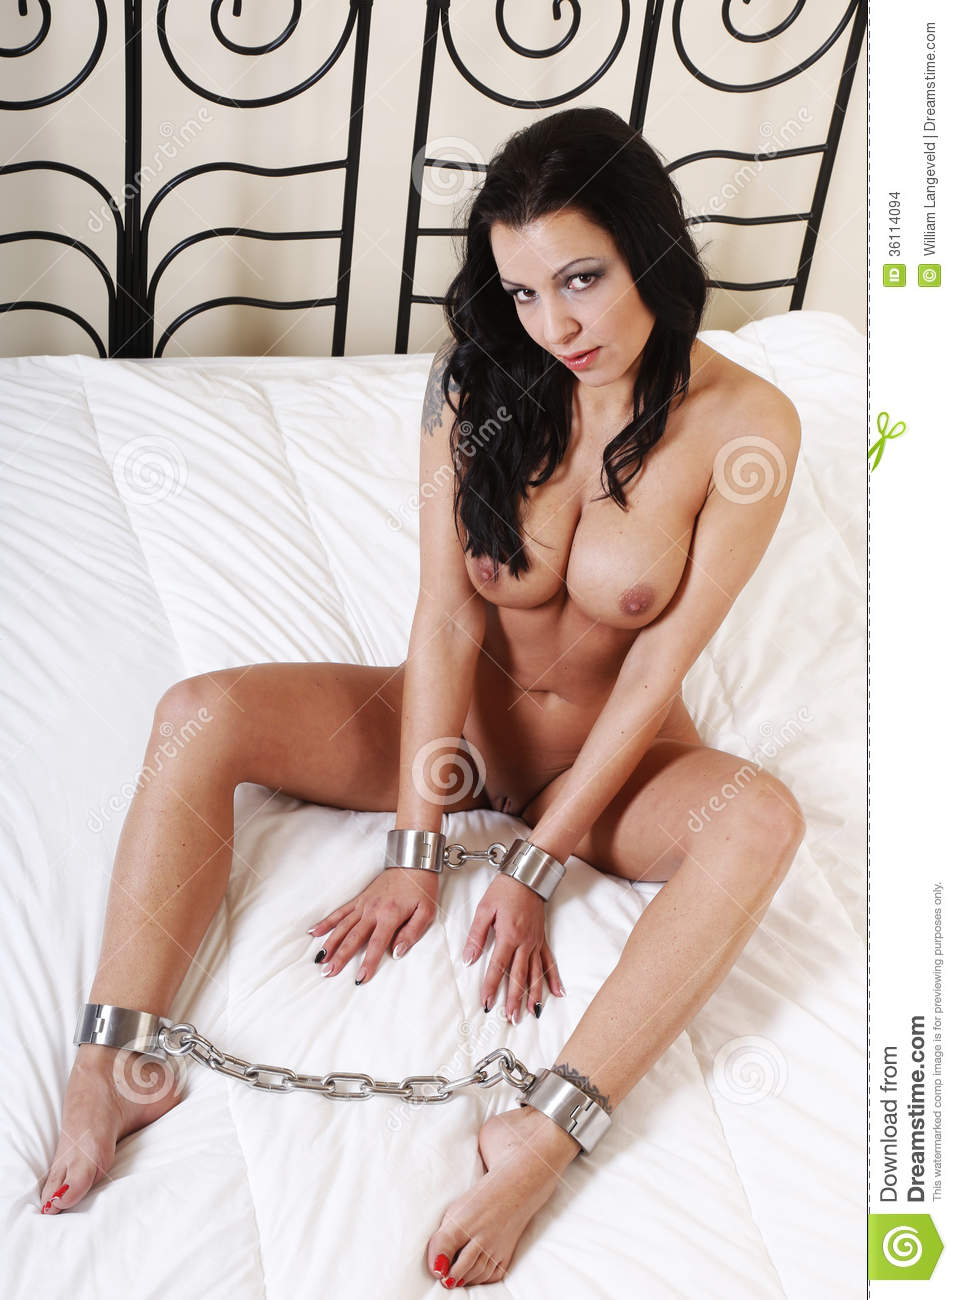 Beautful Nude Or Naked Woman Handcuffed Stock Photo -5924